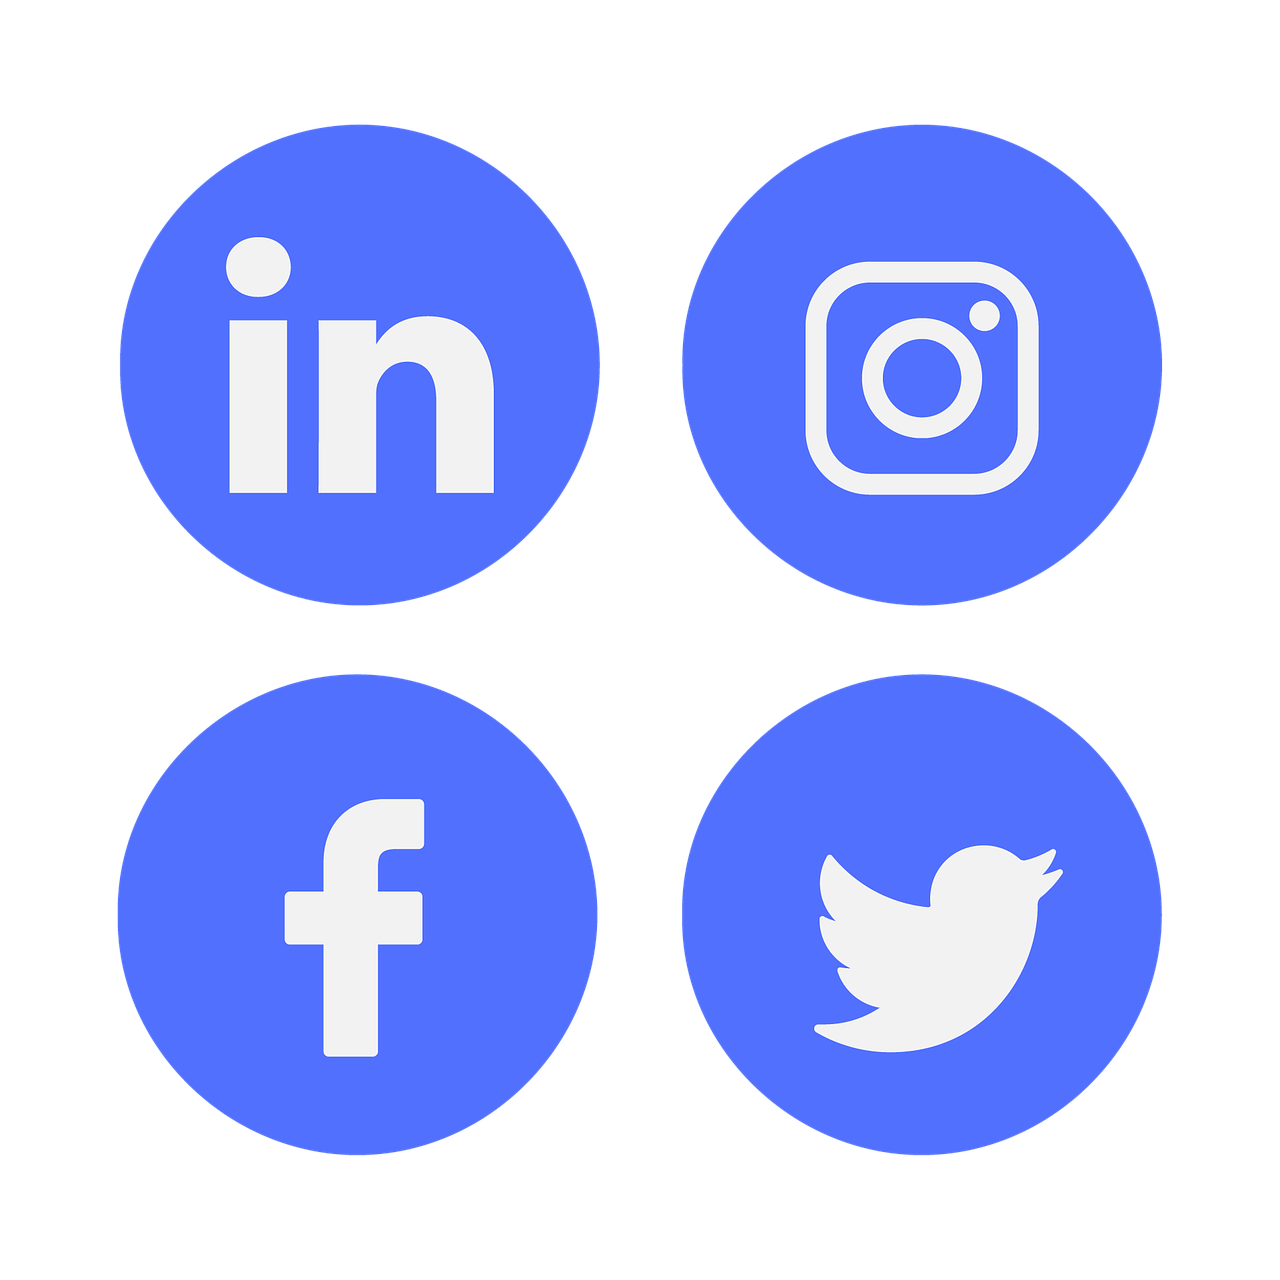 icon, social media, linkedin